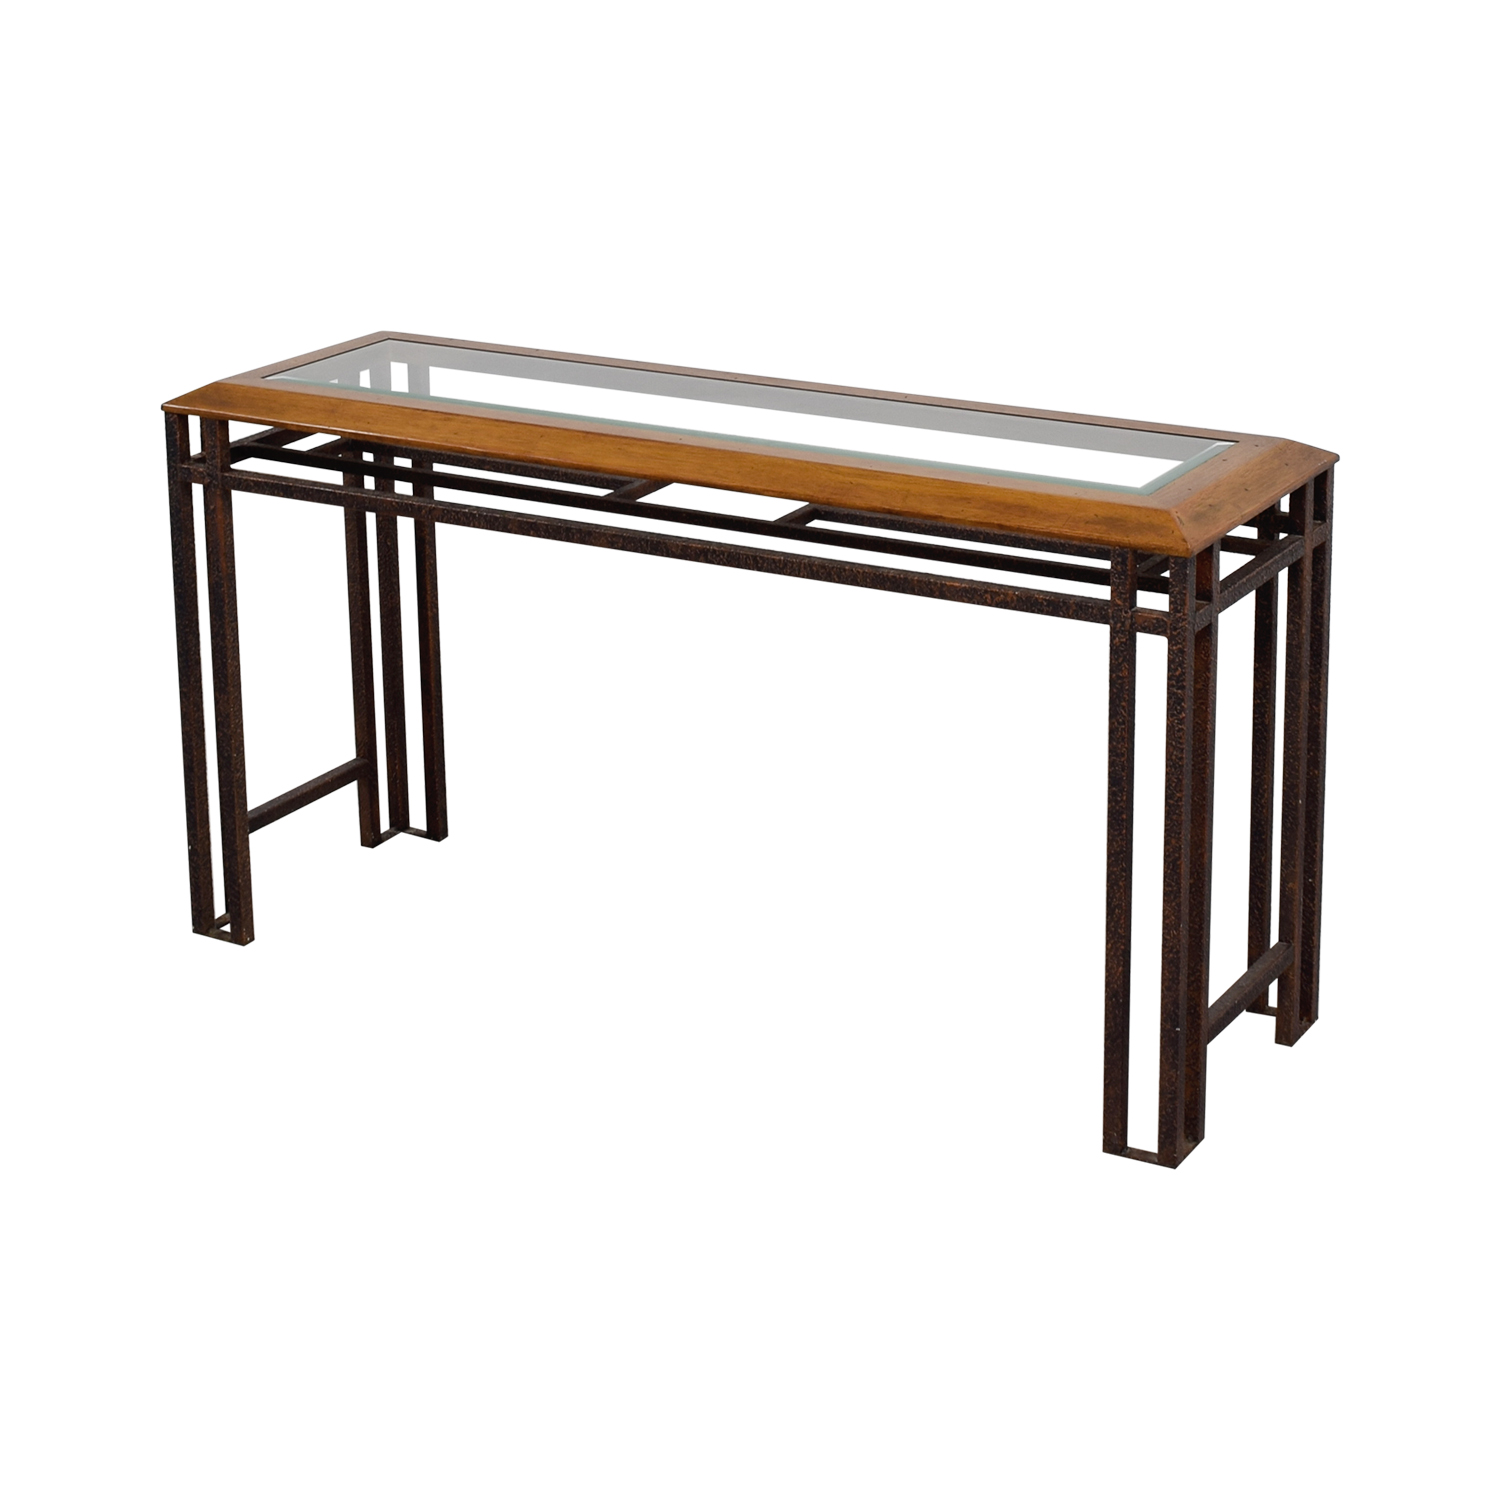 Rustic Brass Wood and Glass Console Table price